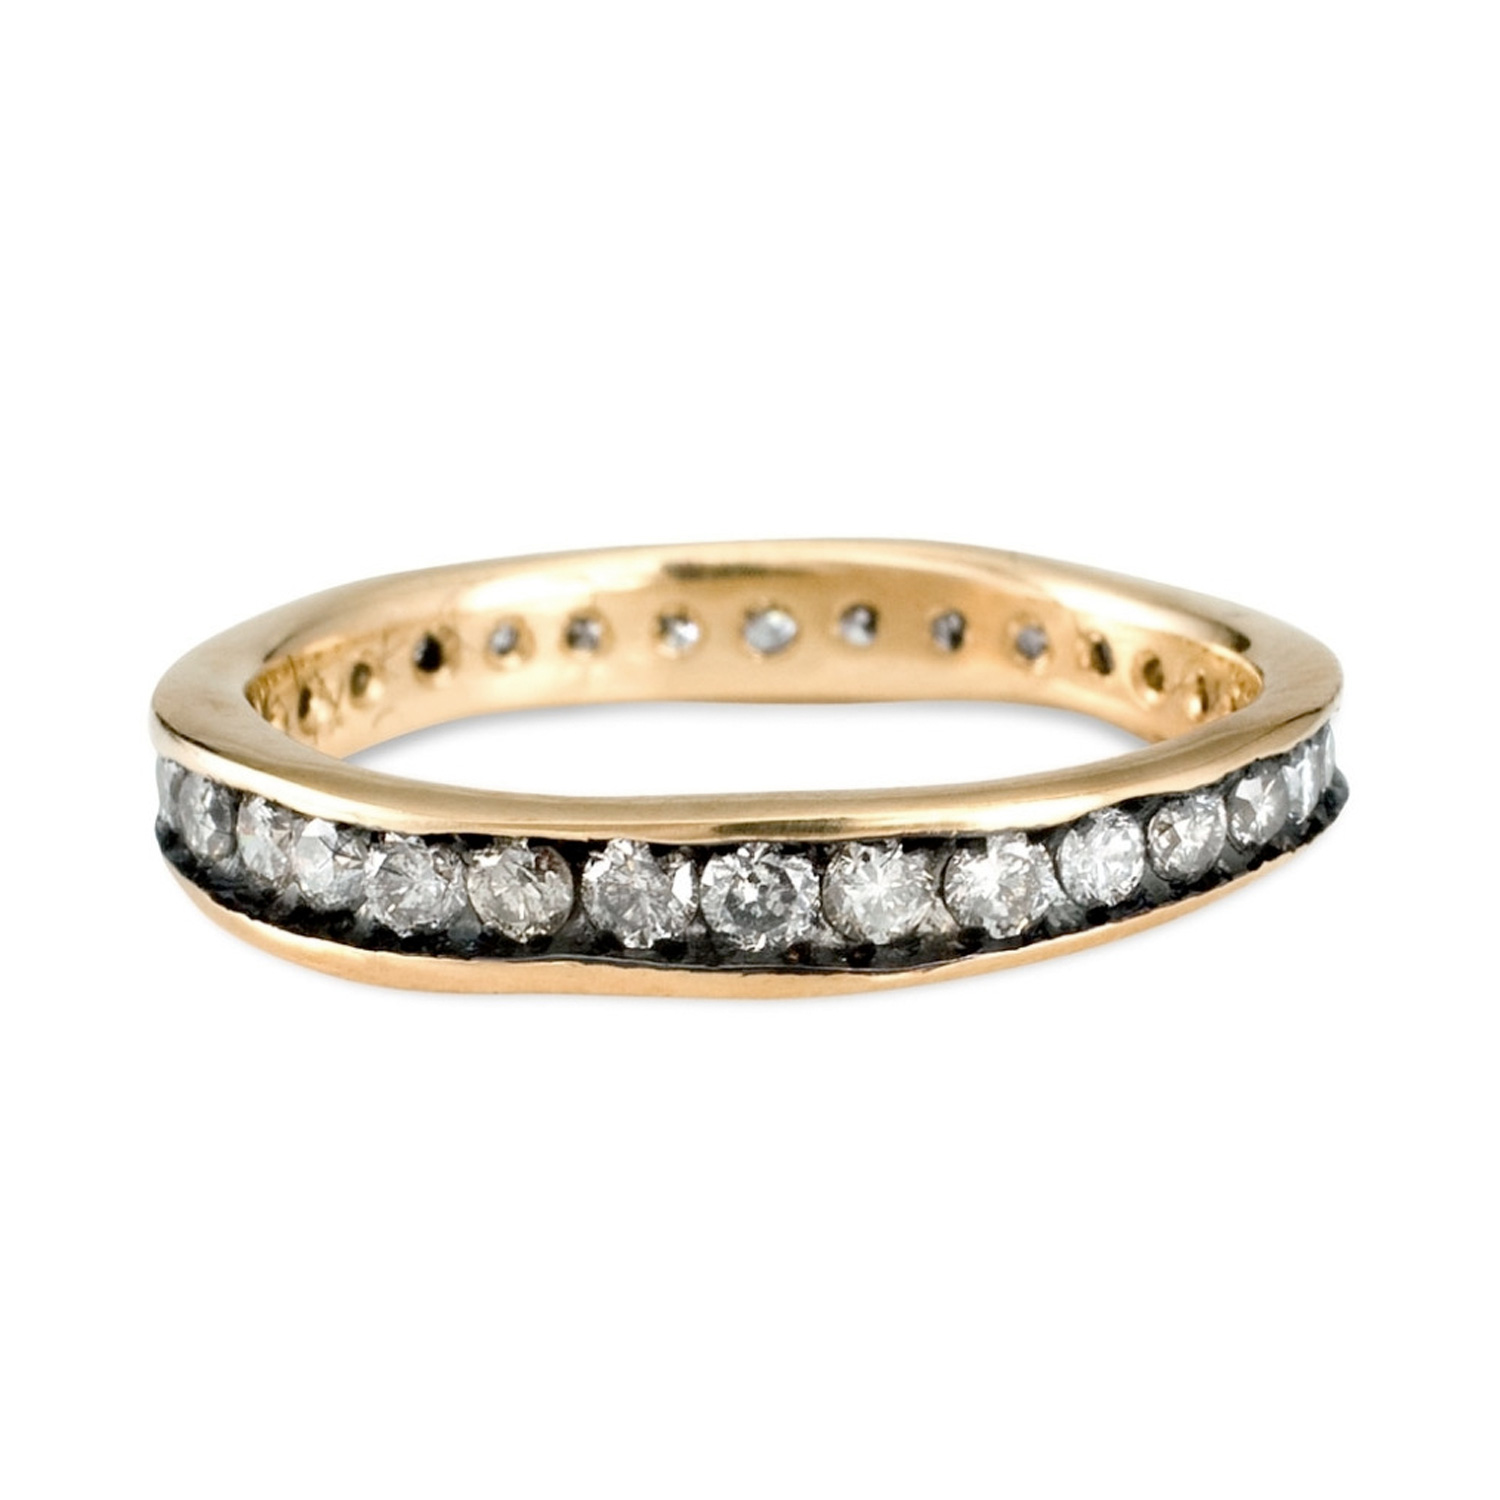 diamond expensive gold rings have wedding to not be bands band ipunya with